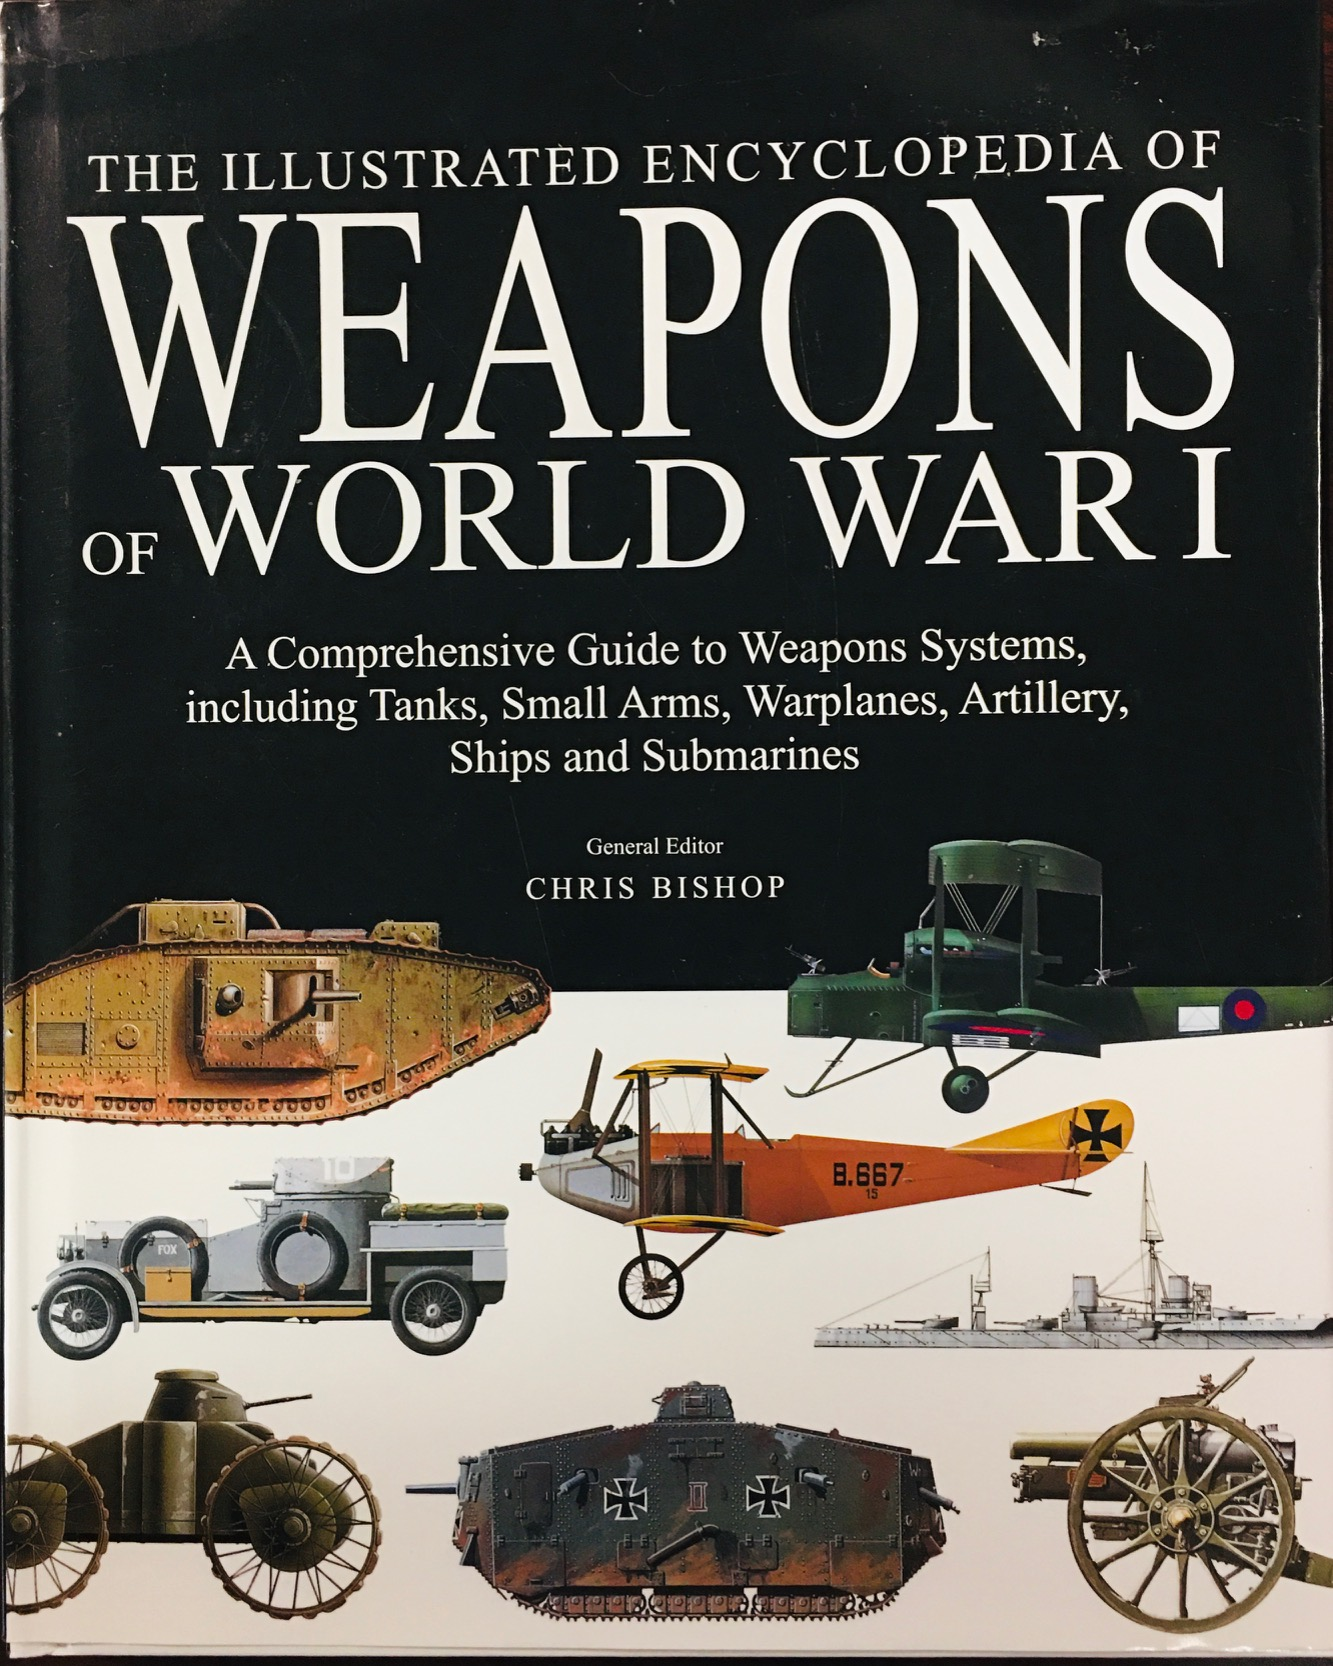 Image for The Illustrated Encyclopedia of Weapons of World War I: A Comprehensive Guide to Weapons Systems, including Tanks, Small Arms, Warplanes, Artillery, Ships and Submarines